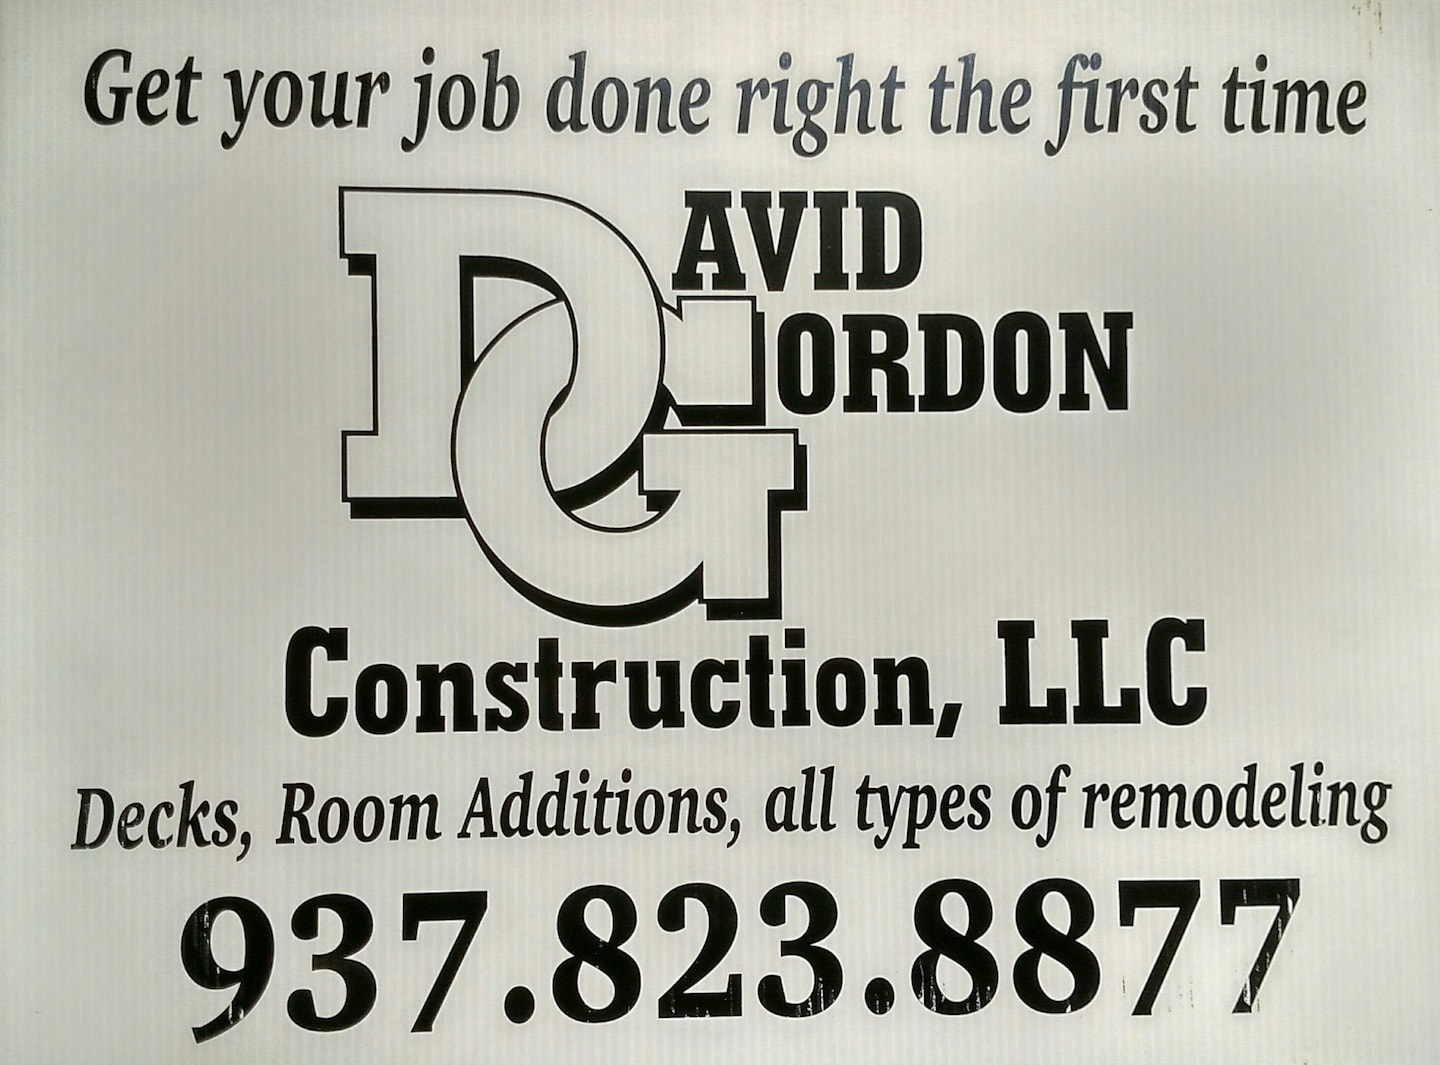 David Gordon Construction LLC